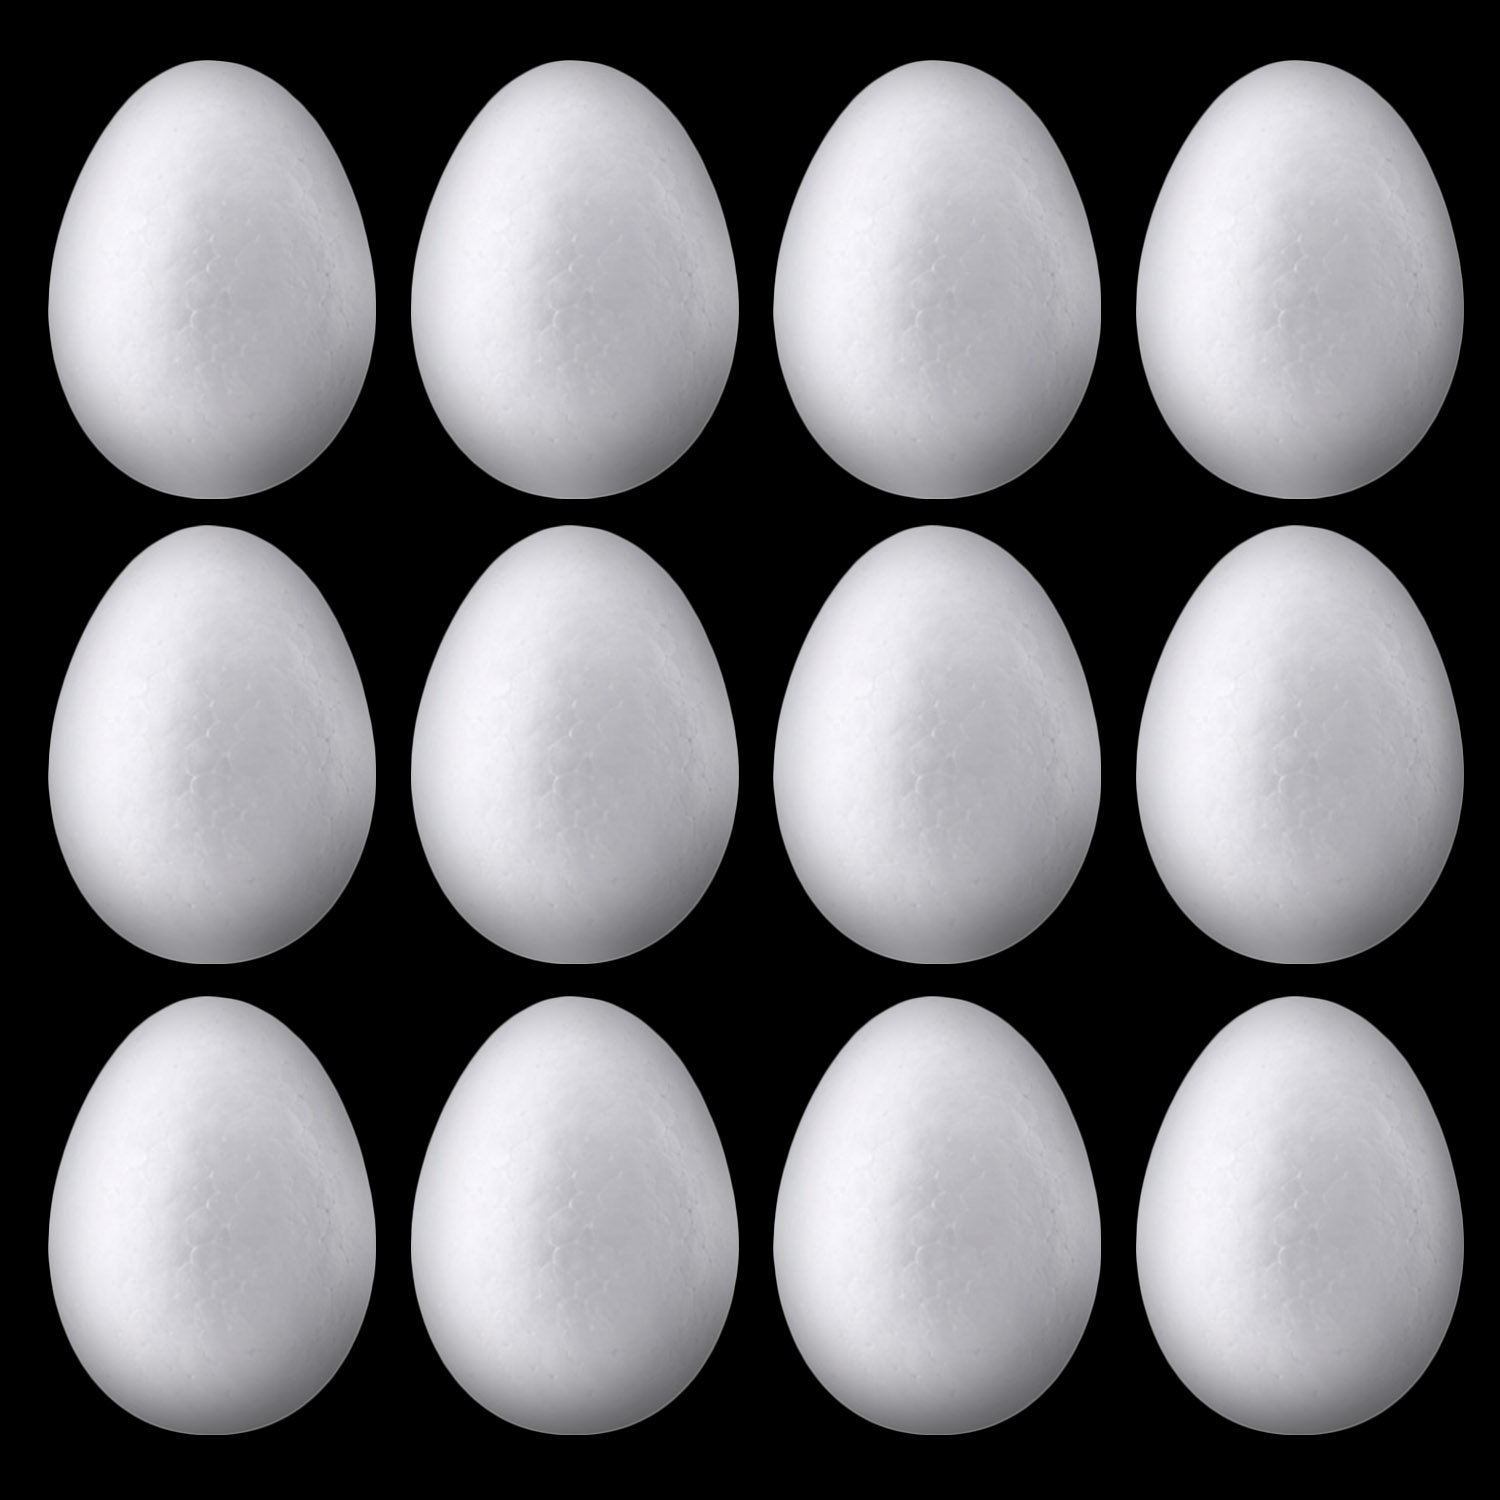 Besegad 50pcs 6cm Free Painting Natural White Foam Eggs Handmade Balls For DIY Easter Eggs Decorations Painting Crafts Supplies